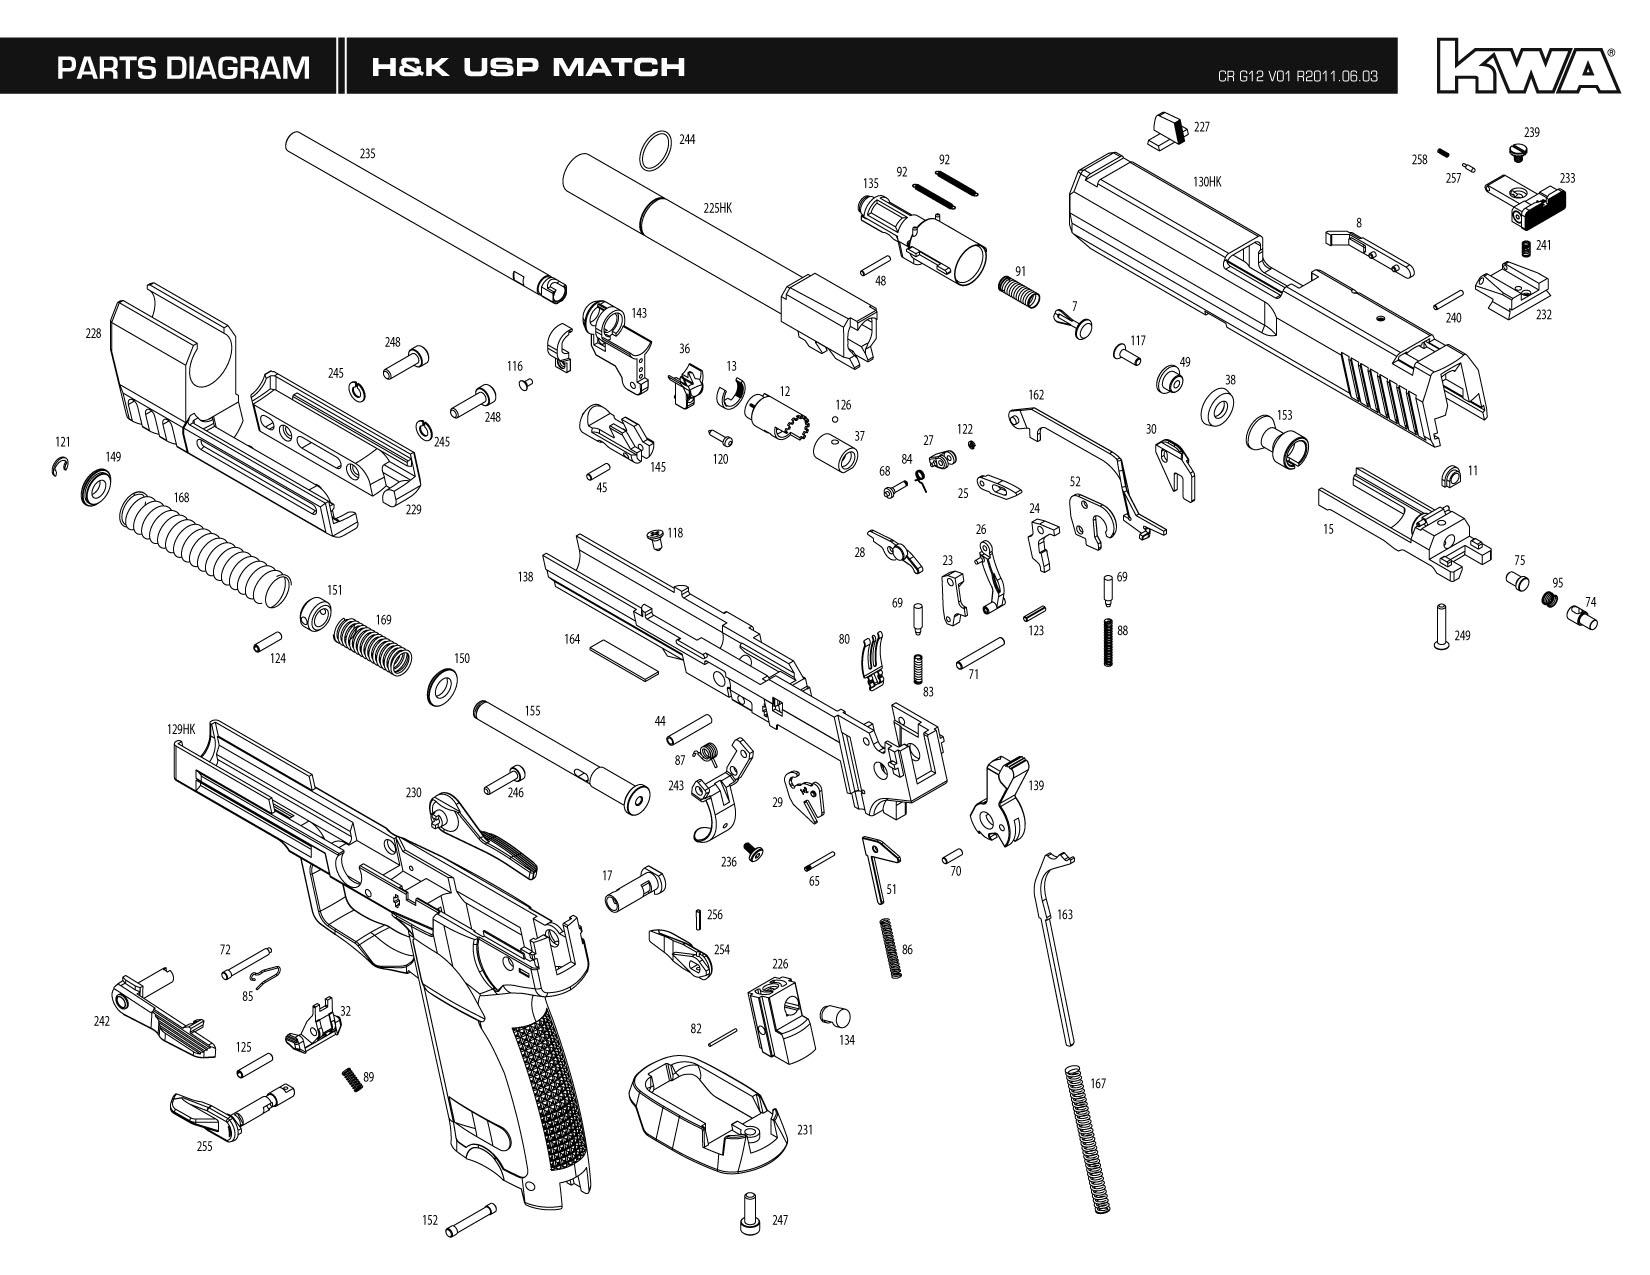 Free Download Kwa H Amp K Usp Match Gas Blowback Instruction